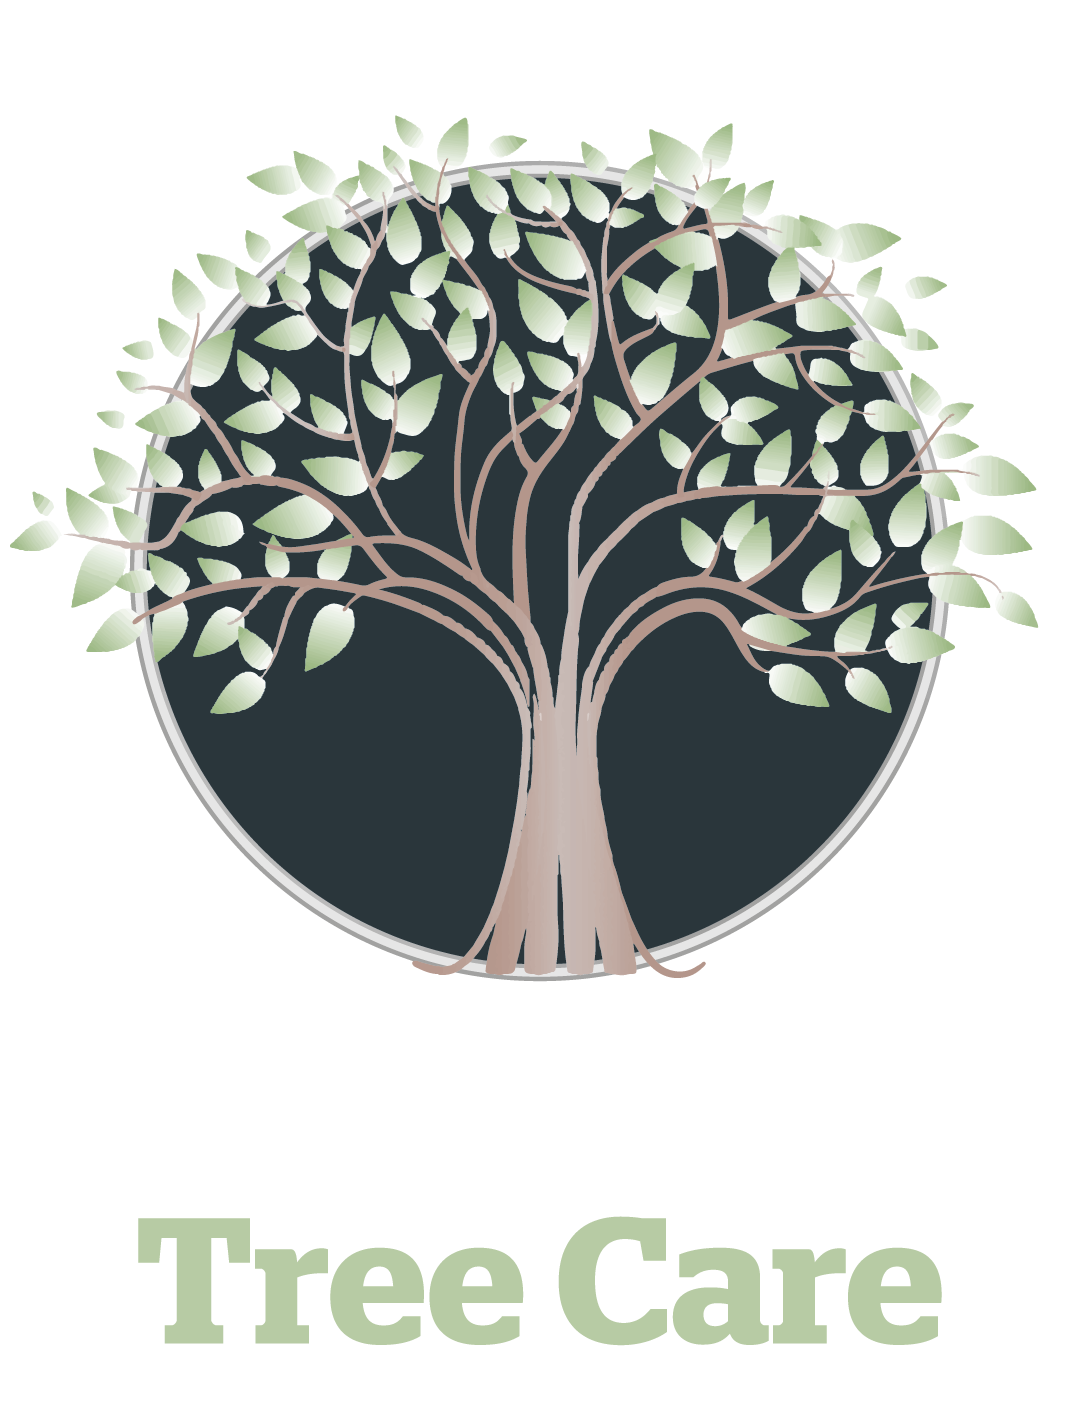 Scullion-Tree-Care-Final-Art-(WL)-01.png